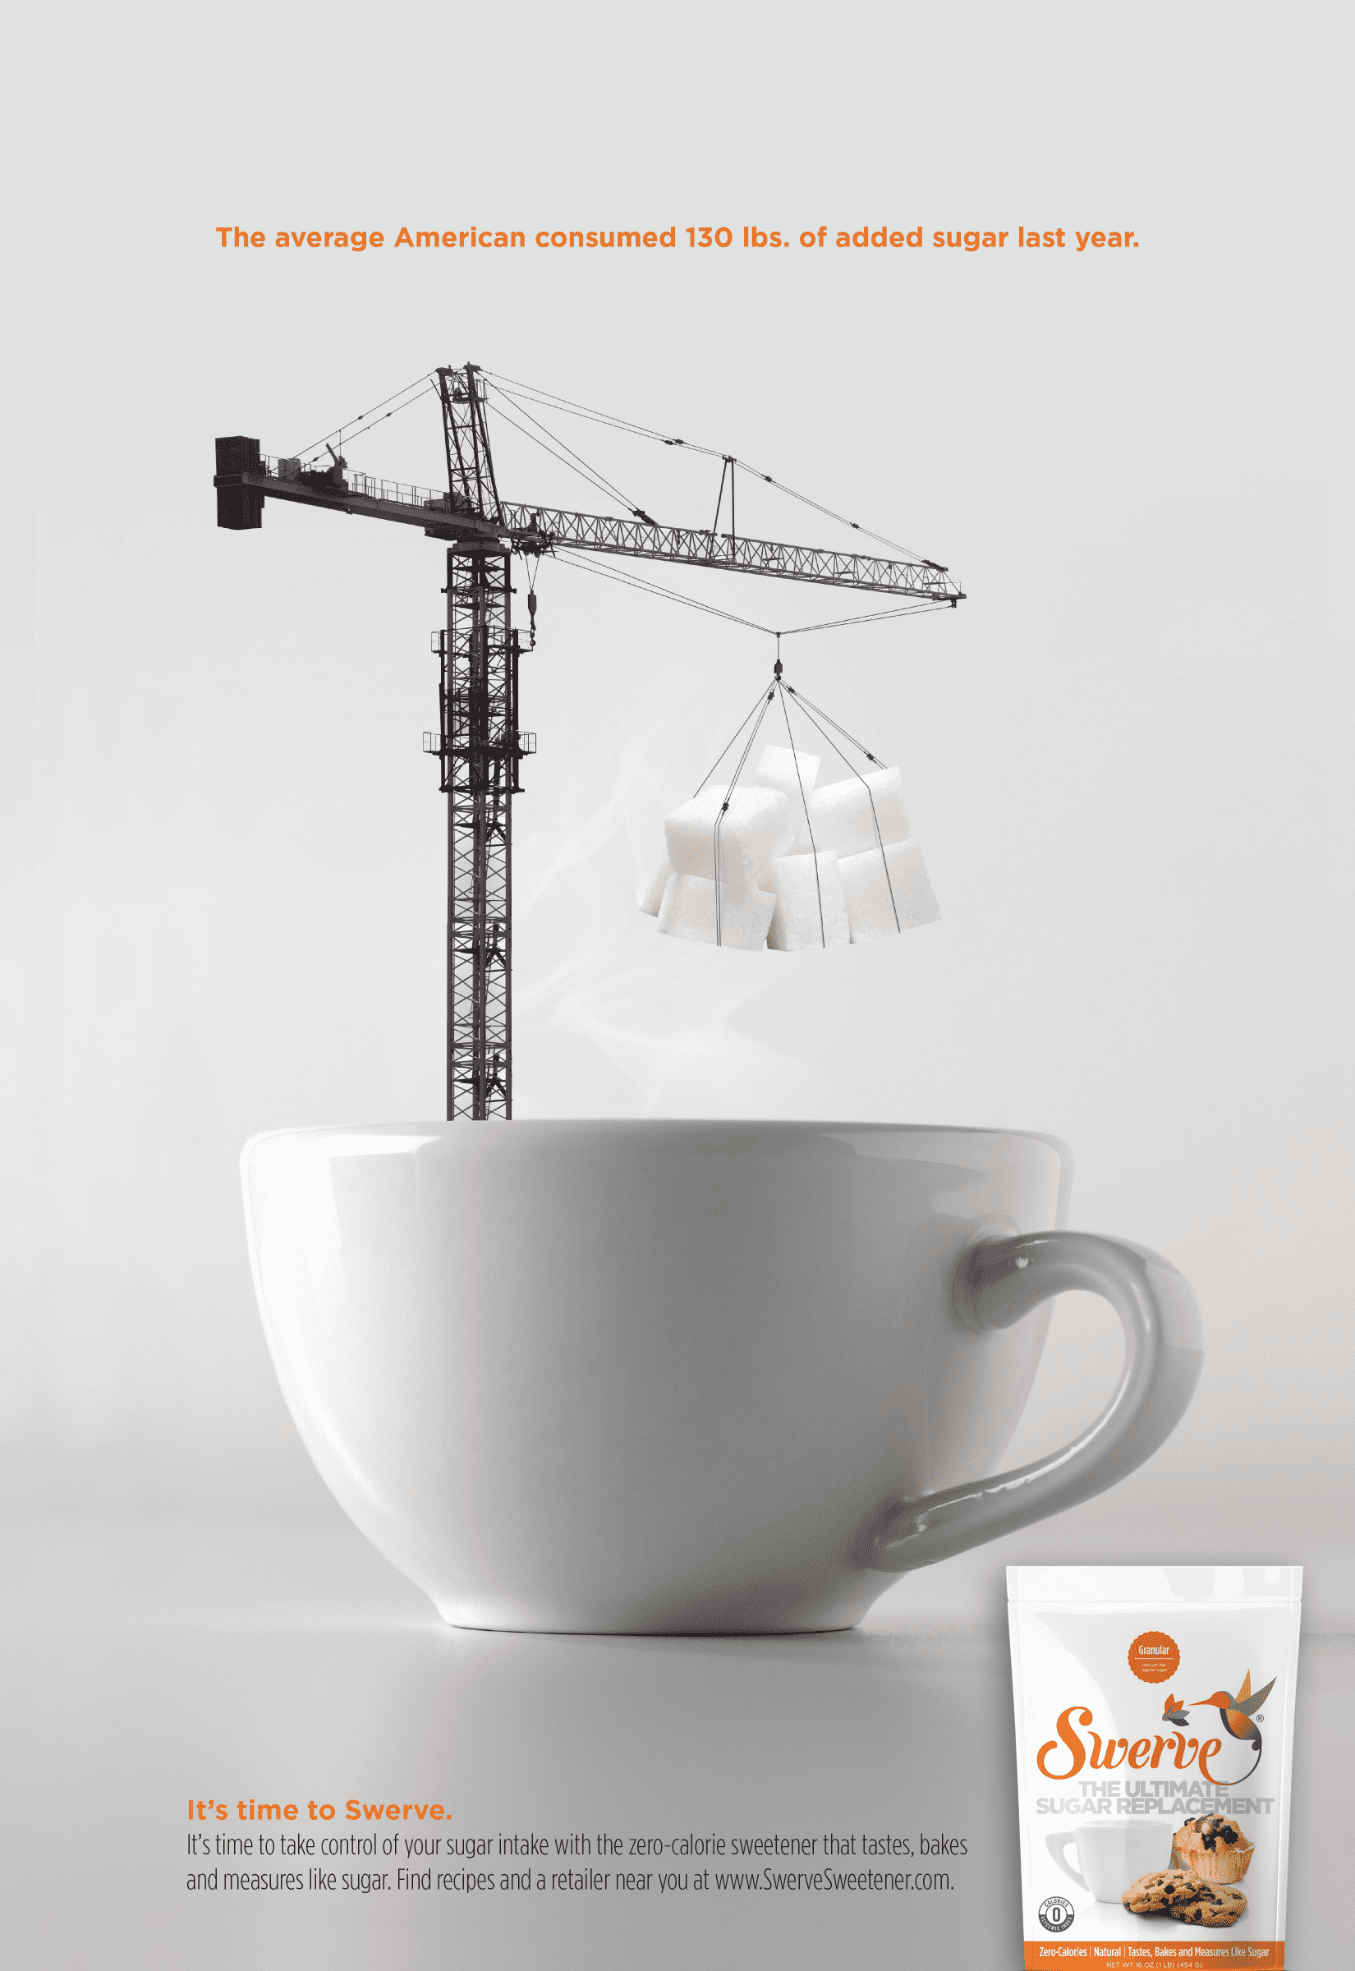 ad for swerve sweetener of a crane dropping sugar into cup